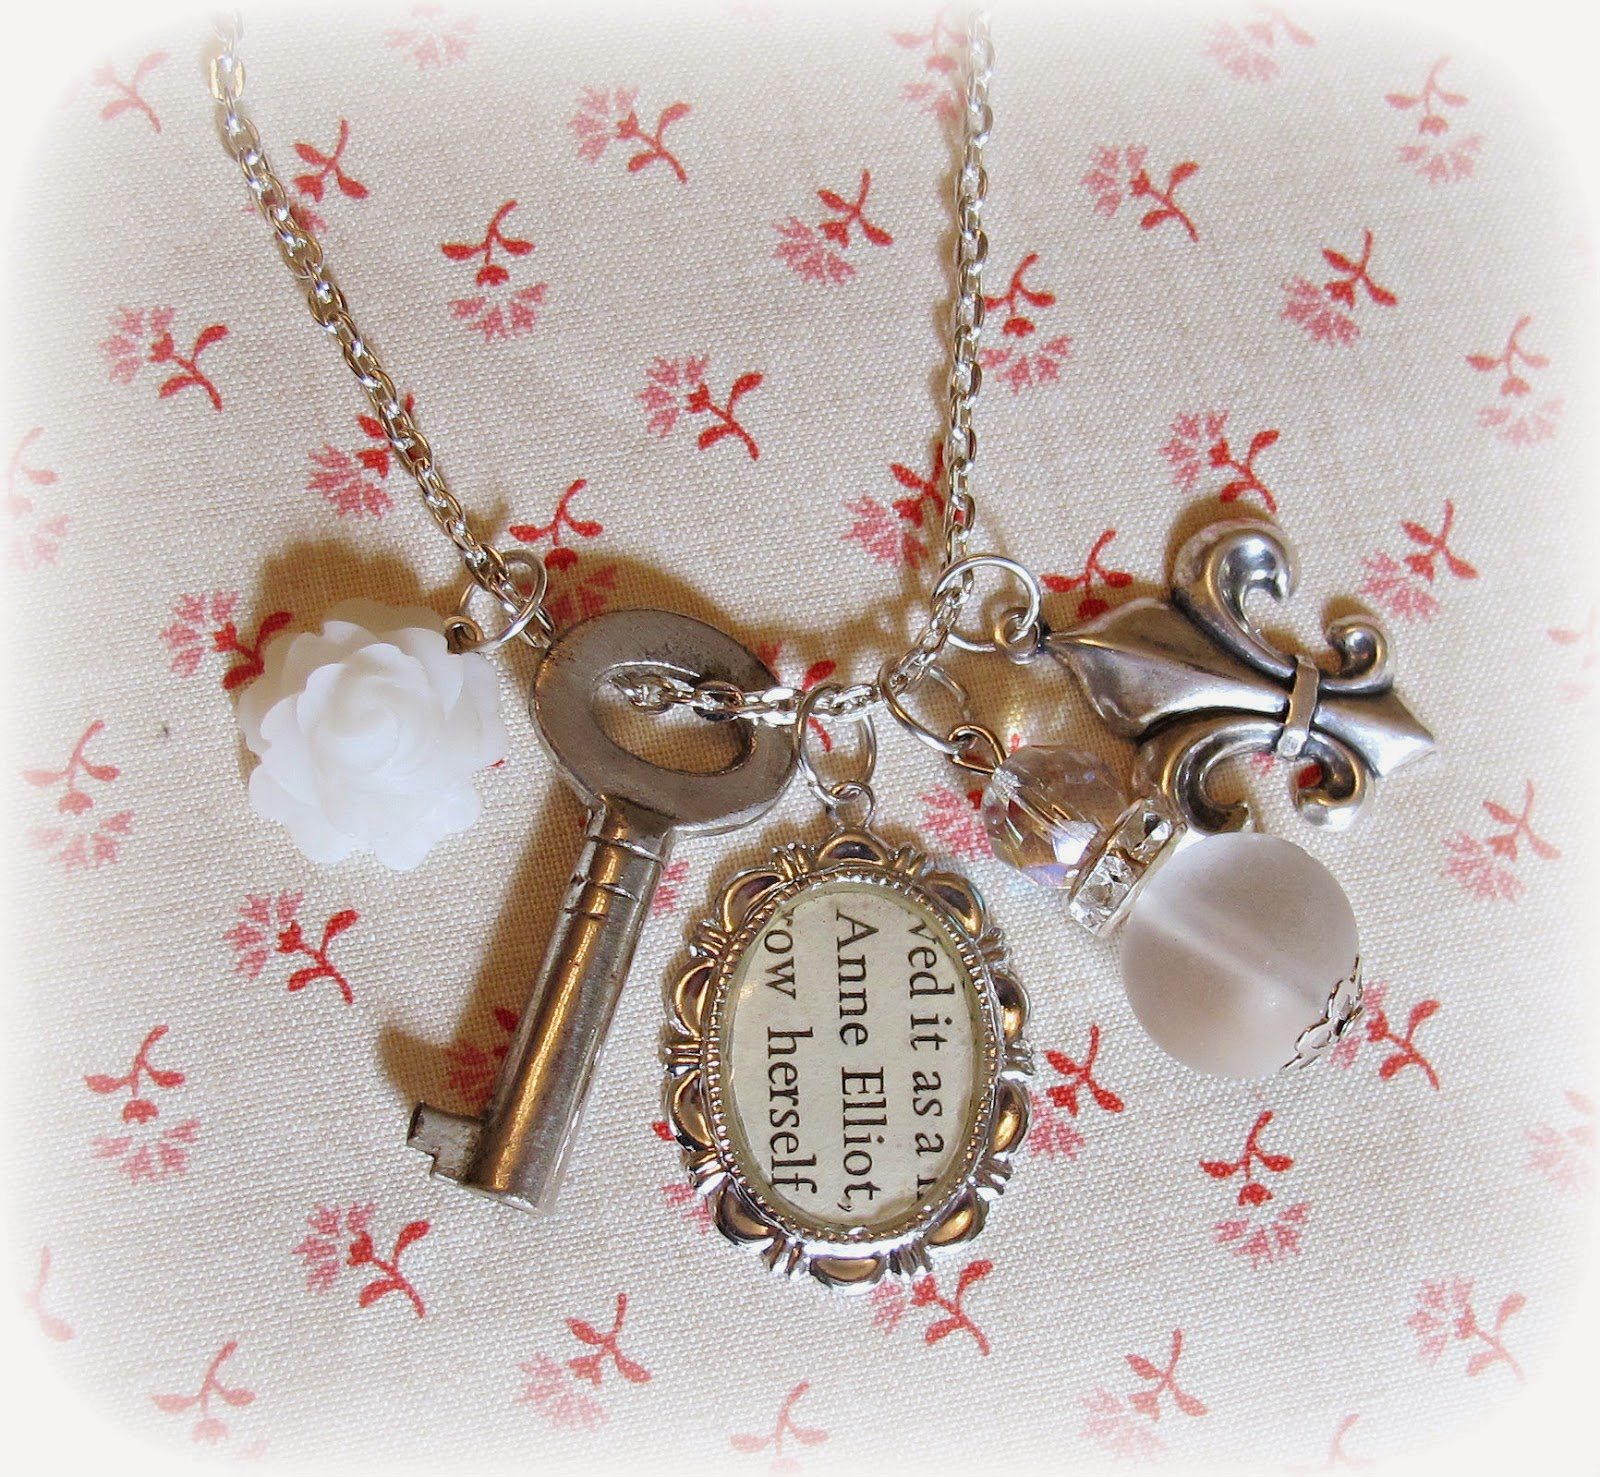 image jane austen charm necklace anne elliot persuasion skeleton key vintage white fleur de lys two cheeky monkeys